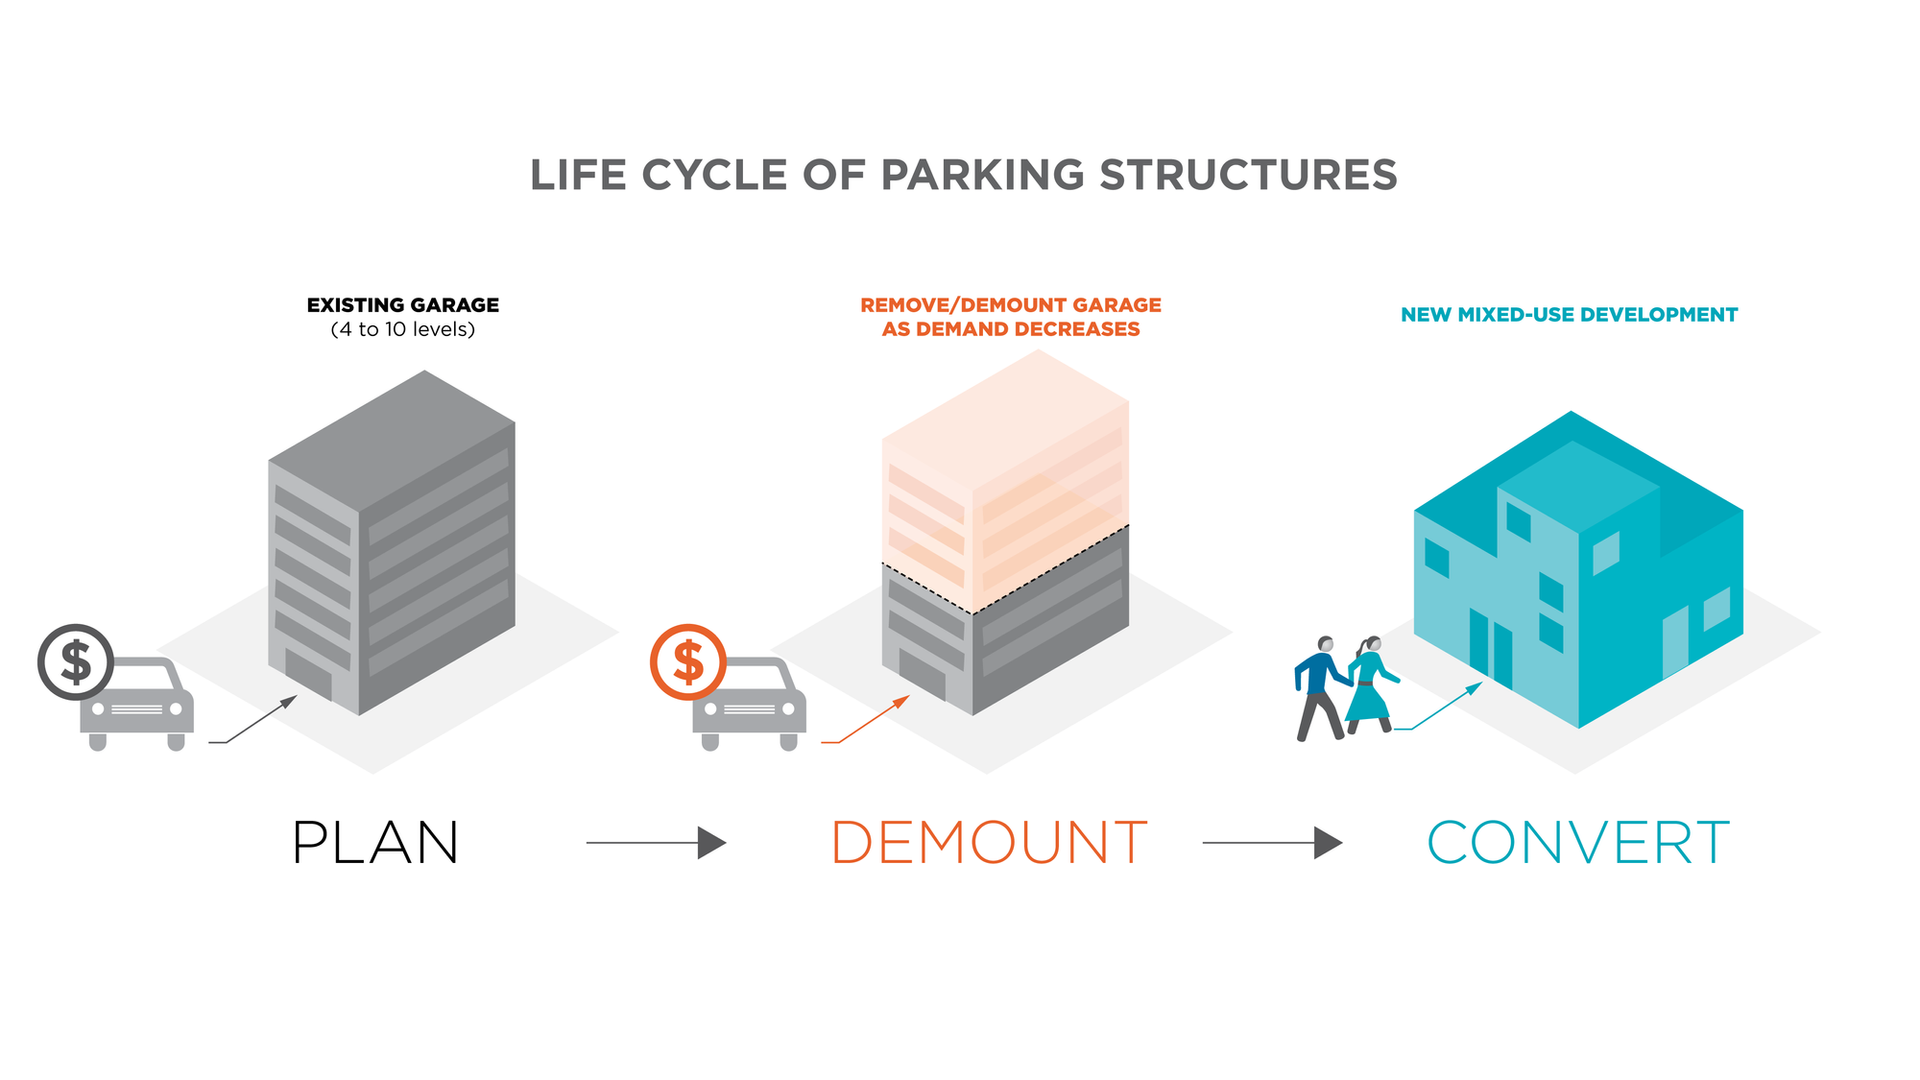 Parking structure life cycle